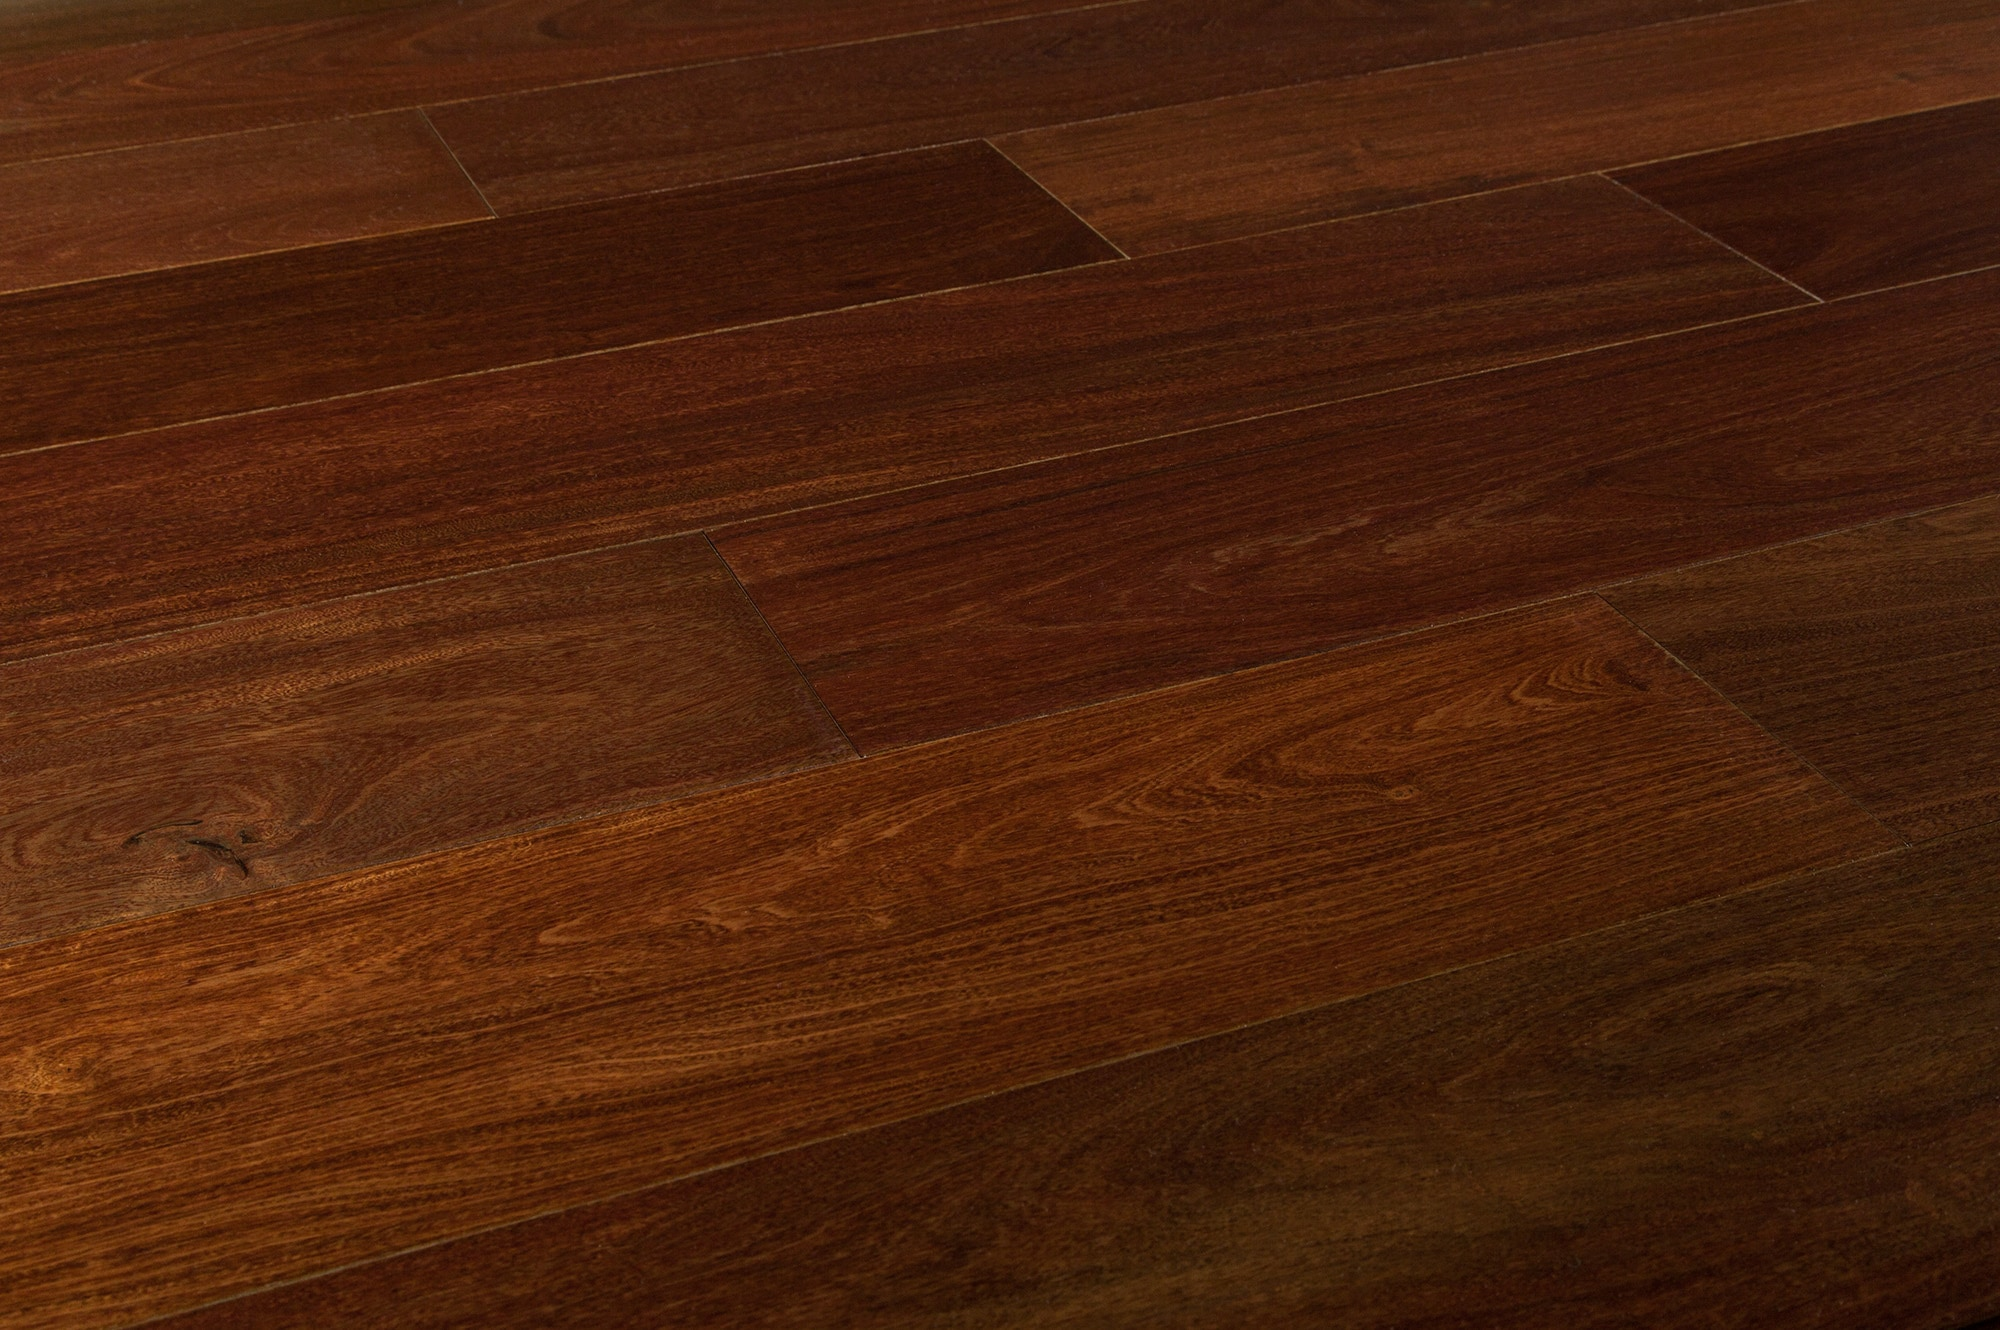 Brazilian walnut engineered hardwood flooring wood floors for Walnut hardwood flooring